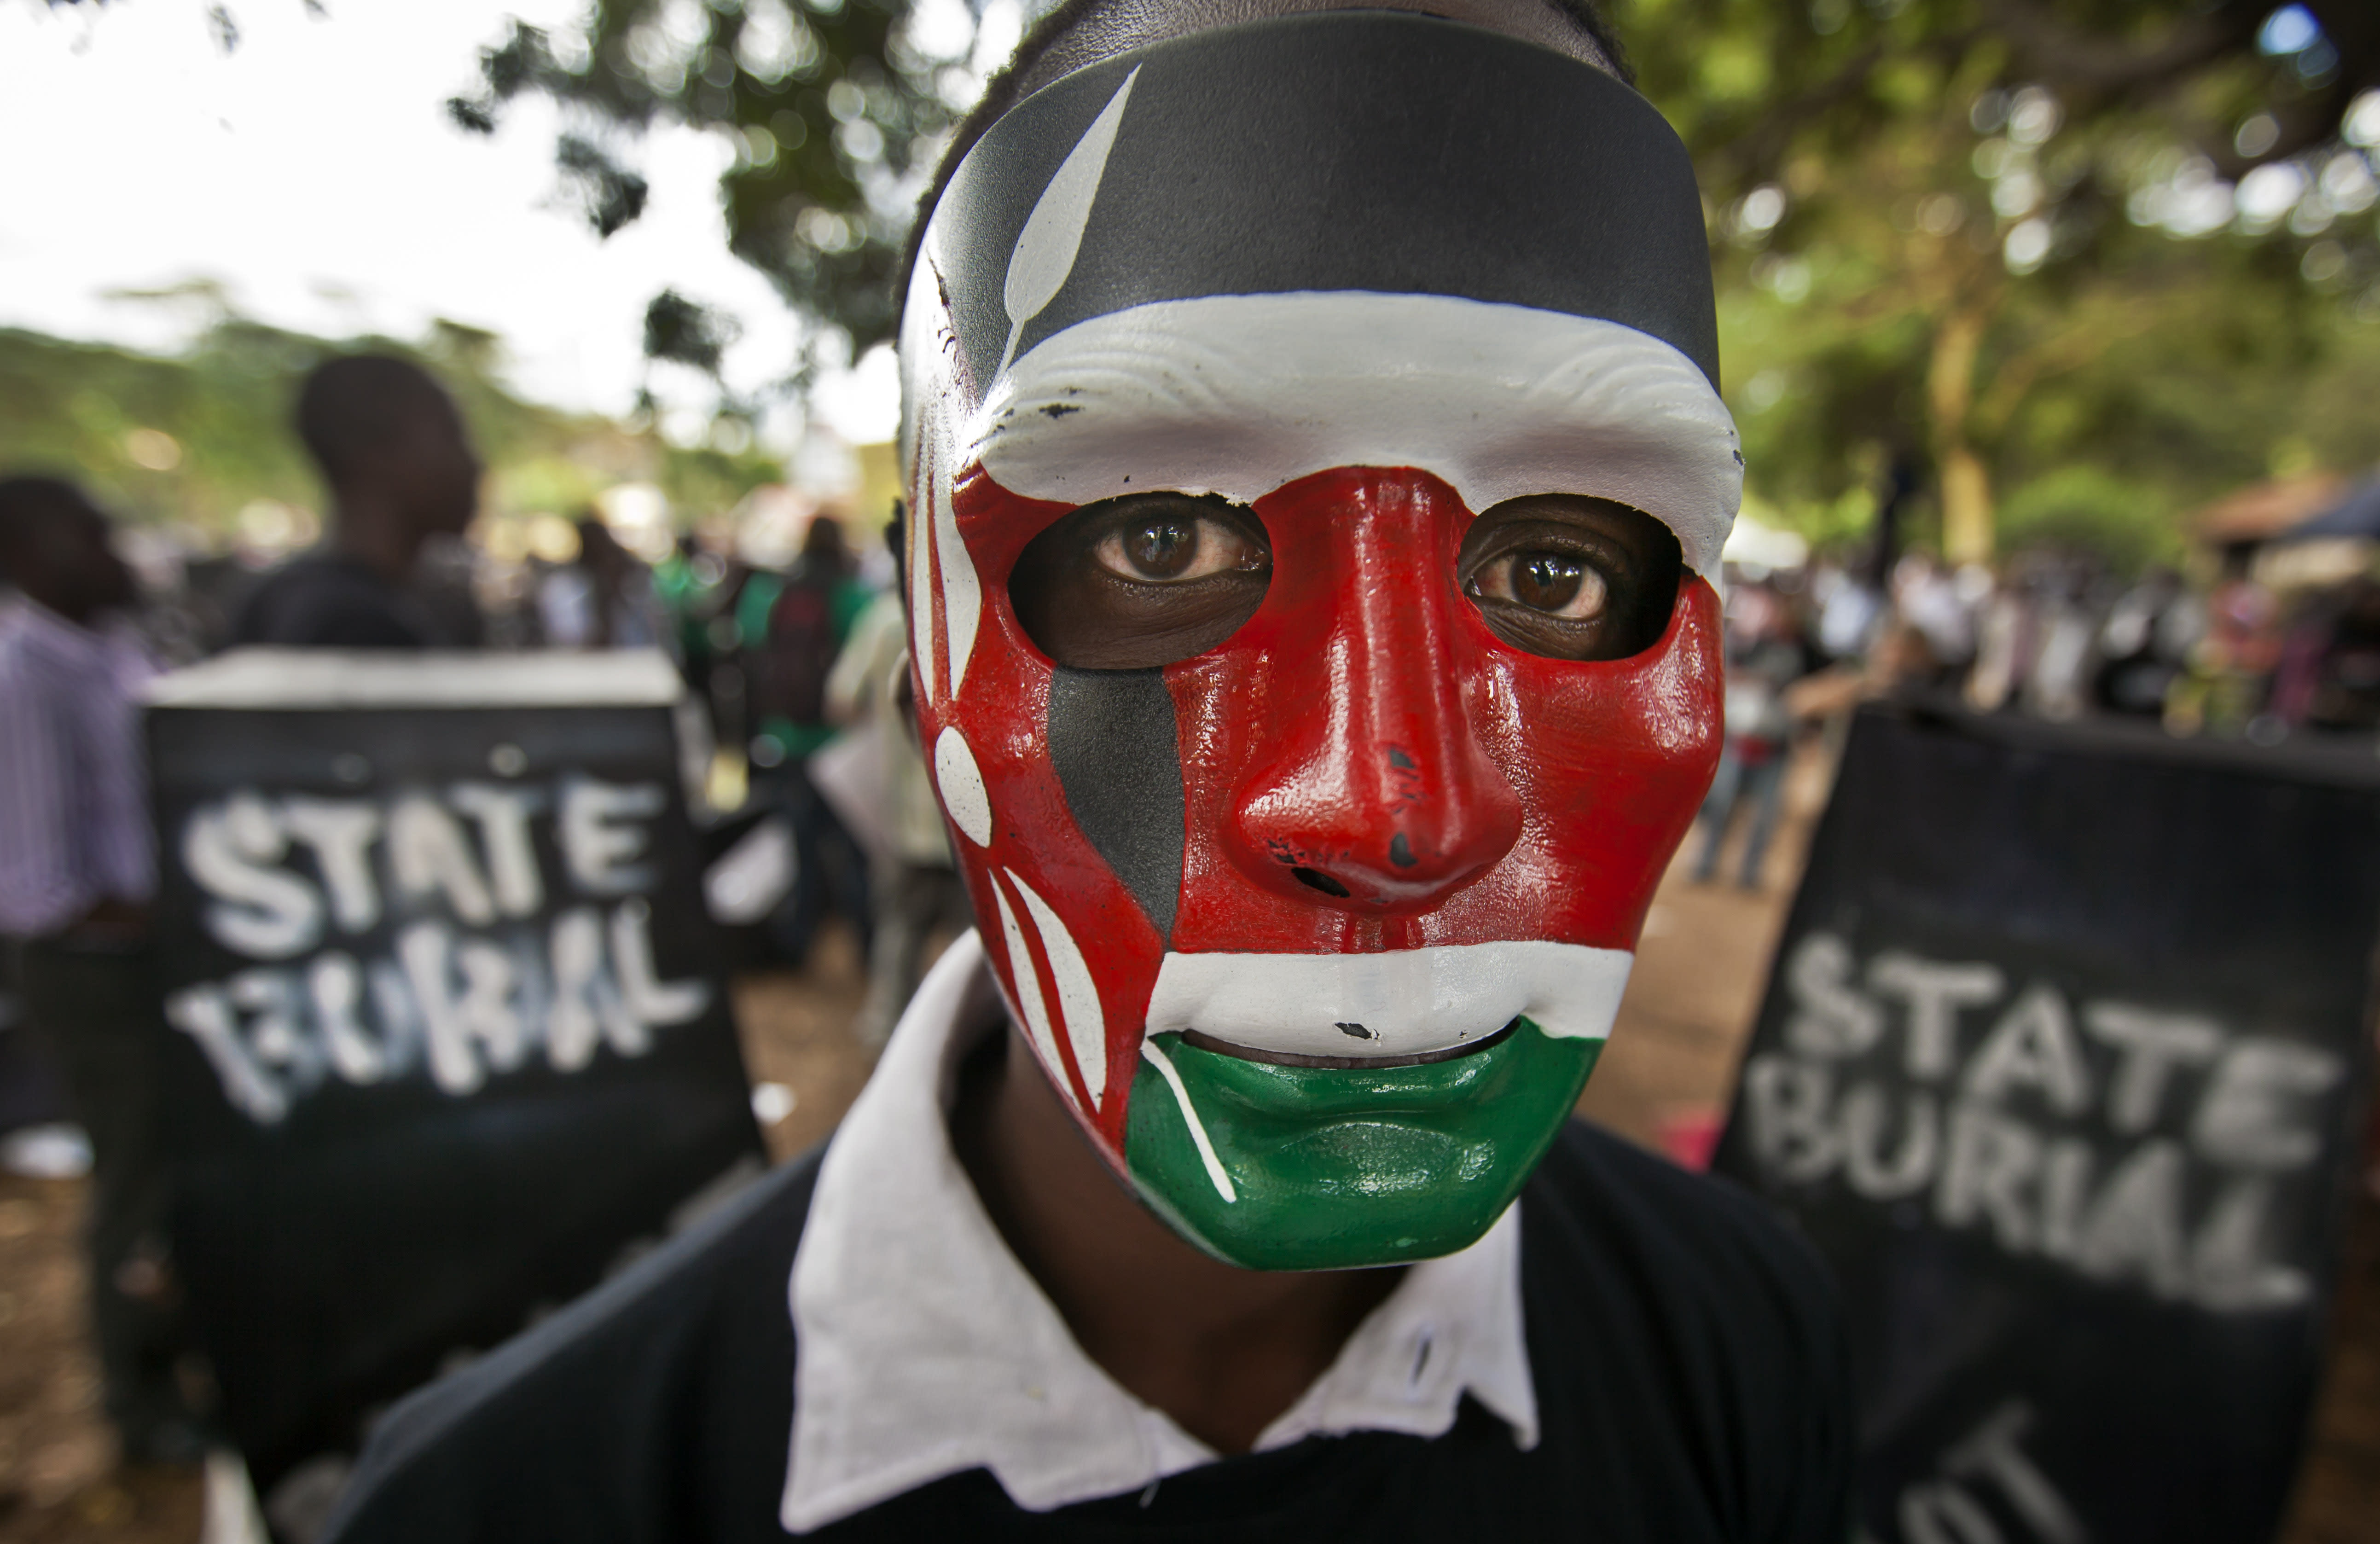 """A demonstrator wears a mask in the colors of the Kenyan flag as he stands next to mock coffins, on which are written """"State Burial, Ballot Revolution"""", before demonstrators carried the coffins to the Parliament and burned them, in Nairobi, Kenya Wednesday, Jan. 16, 2013. Hundreds of demonstrators angered at outgoing Kenyan legislators, whose term ended earlier this week and who earn about $175,000 a year in a country where the average annual income is $1,700, doused 221 mock coffins with gasoline, one for each legislator, to protest against last week's attempt to award themselves a $110,000 bonus, which was vetoed by the president. (AP Photo/Ben Curtis)"""